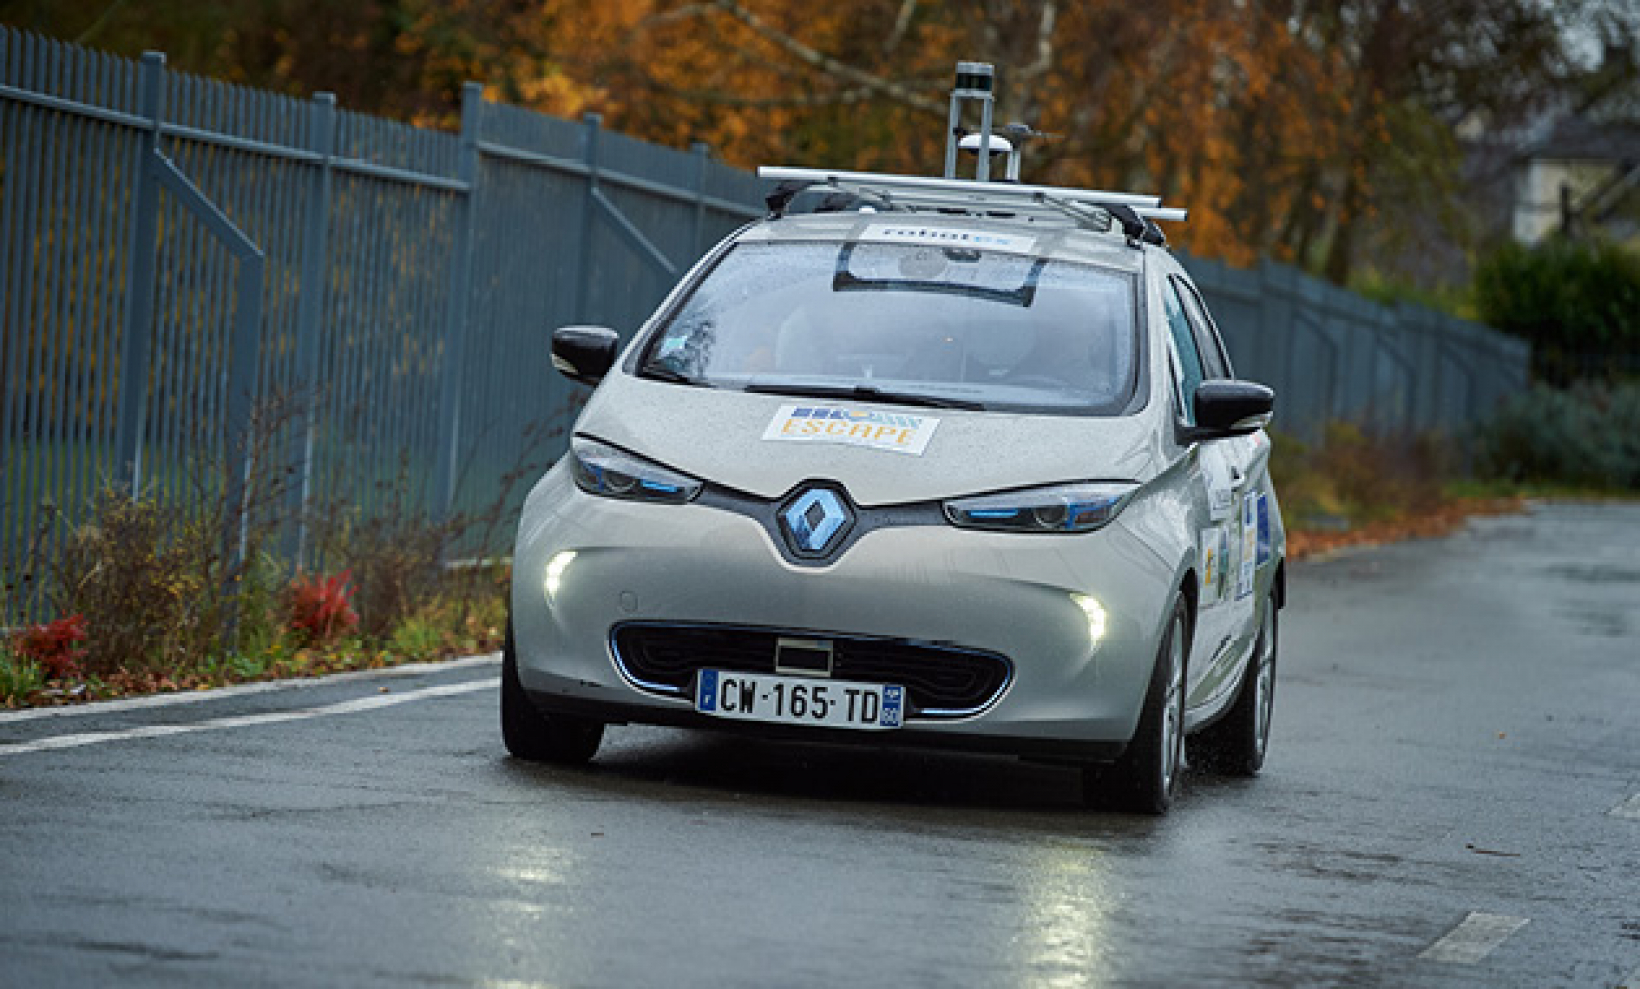 The test saw a Renault ZOE electric car autonomously driven on tracks and on public roads.